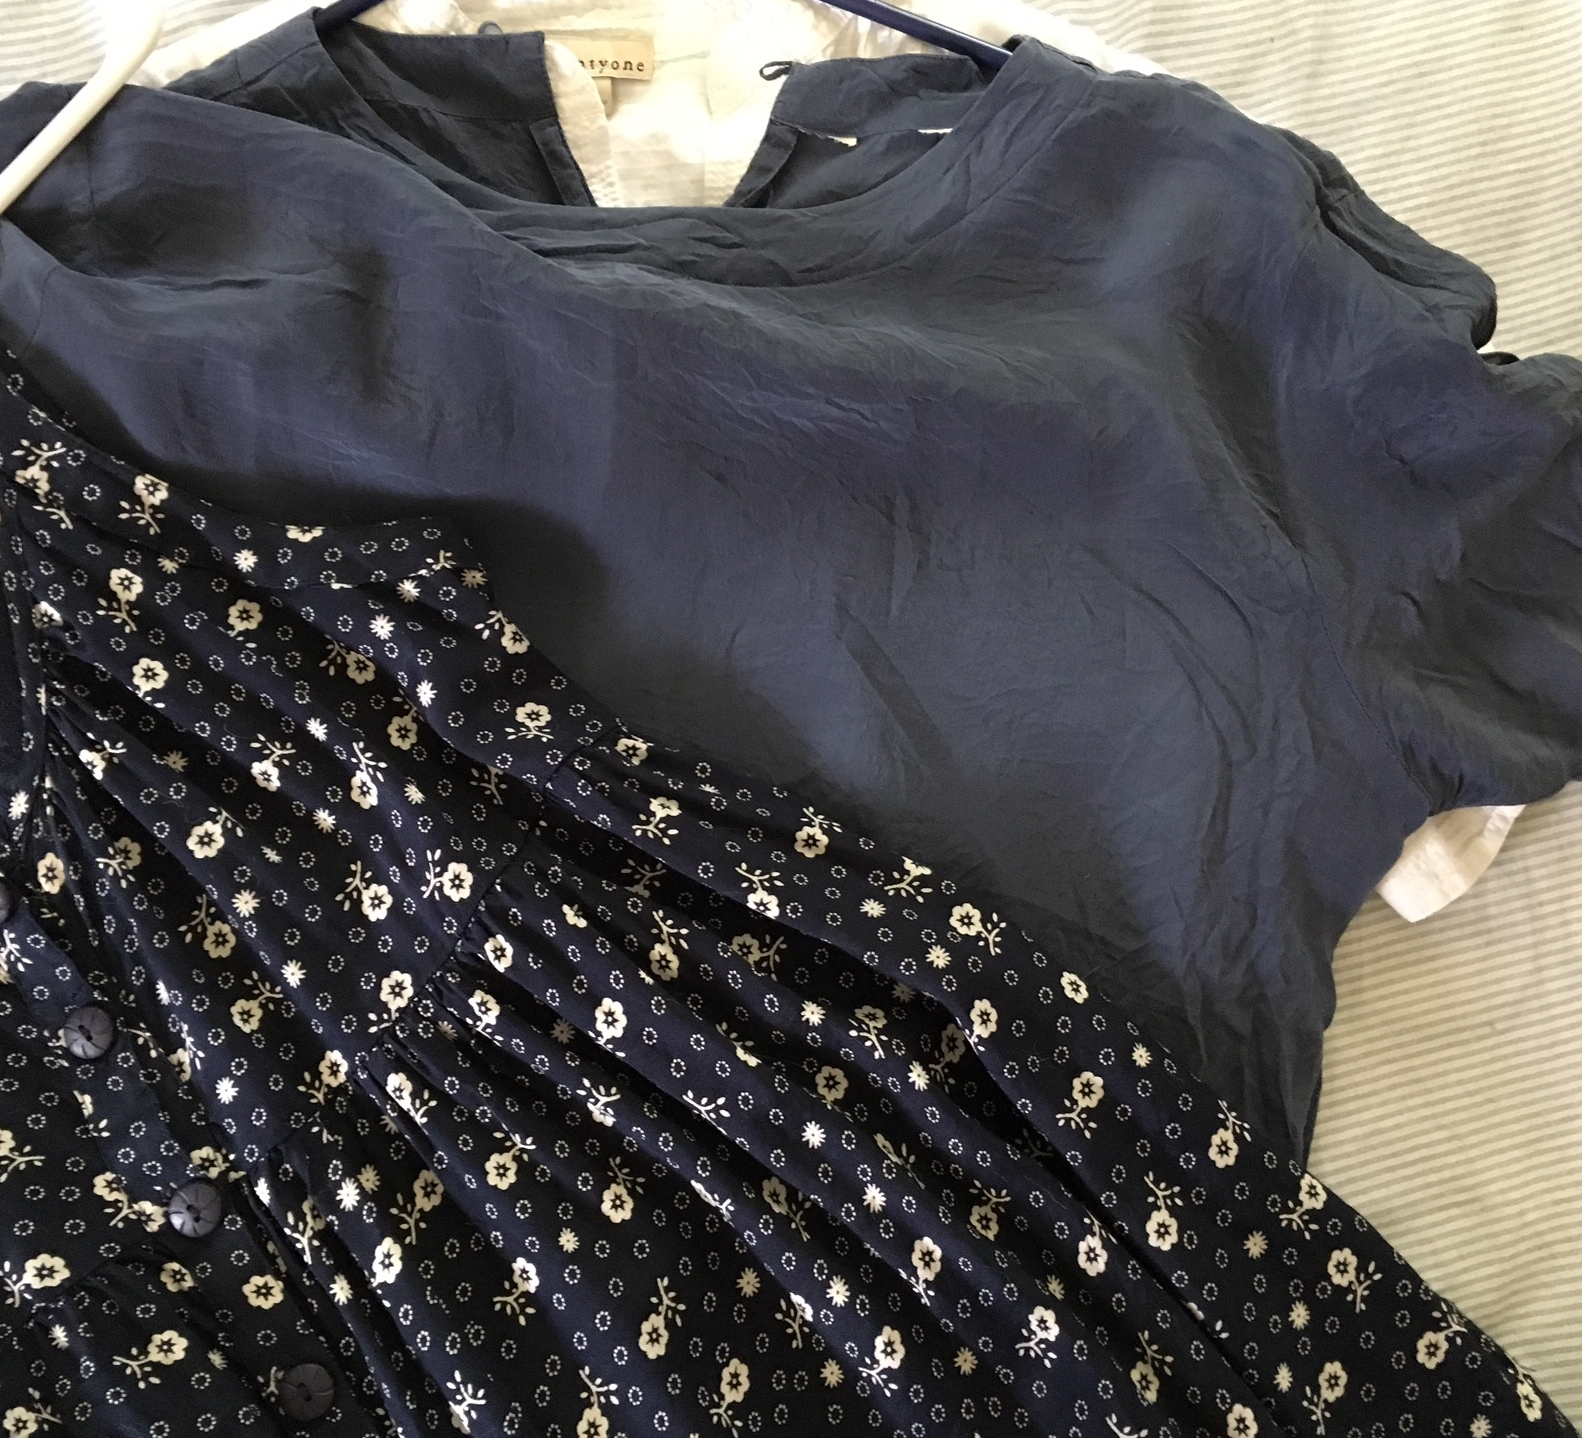 I love this thrifted blue silk top and got a lot of wear out of it in Spring, but it was too hot in summer for this top. I'm keeping it, in case we get some cool days in September and rolling it over to Fall, for sure.